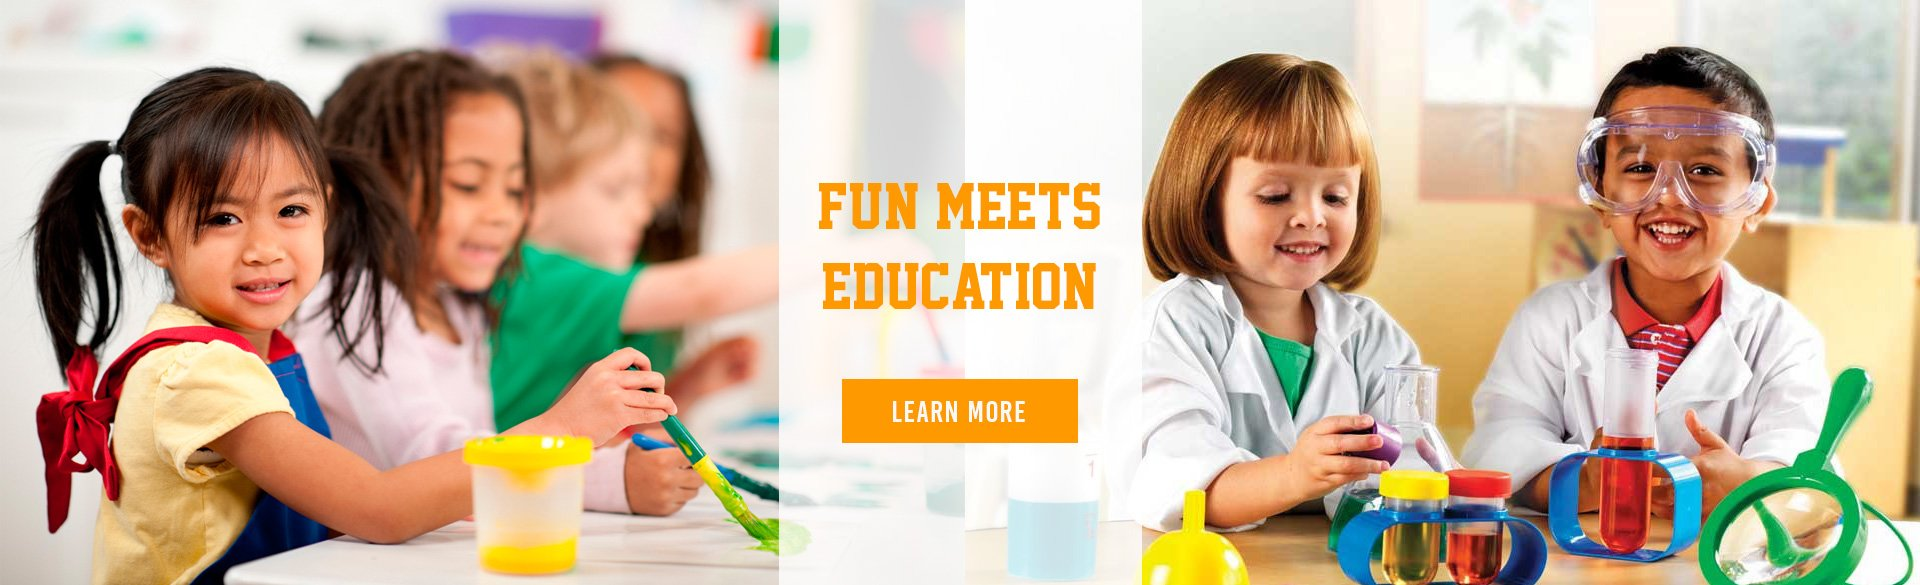 Fun Meets Education